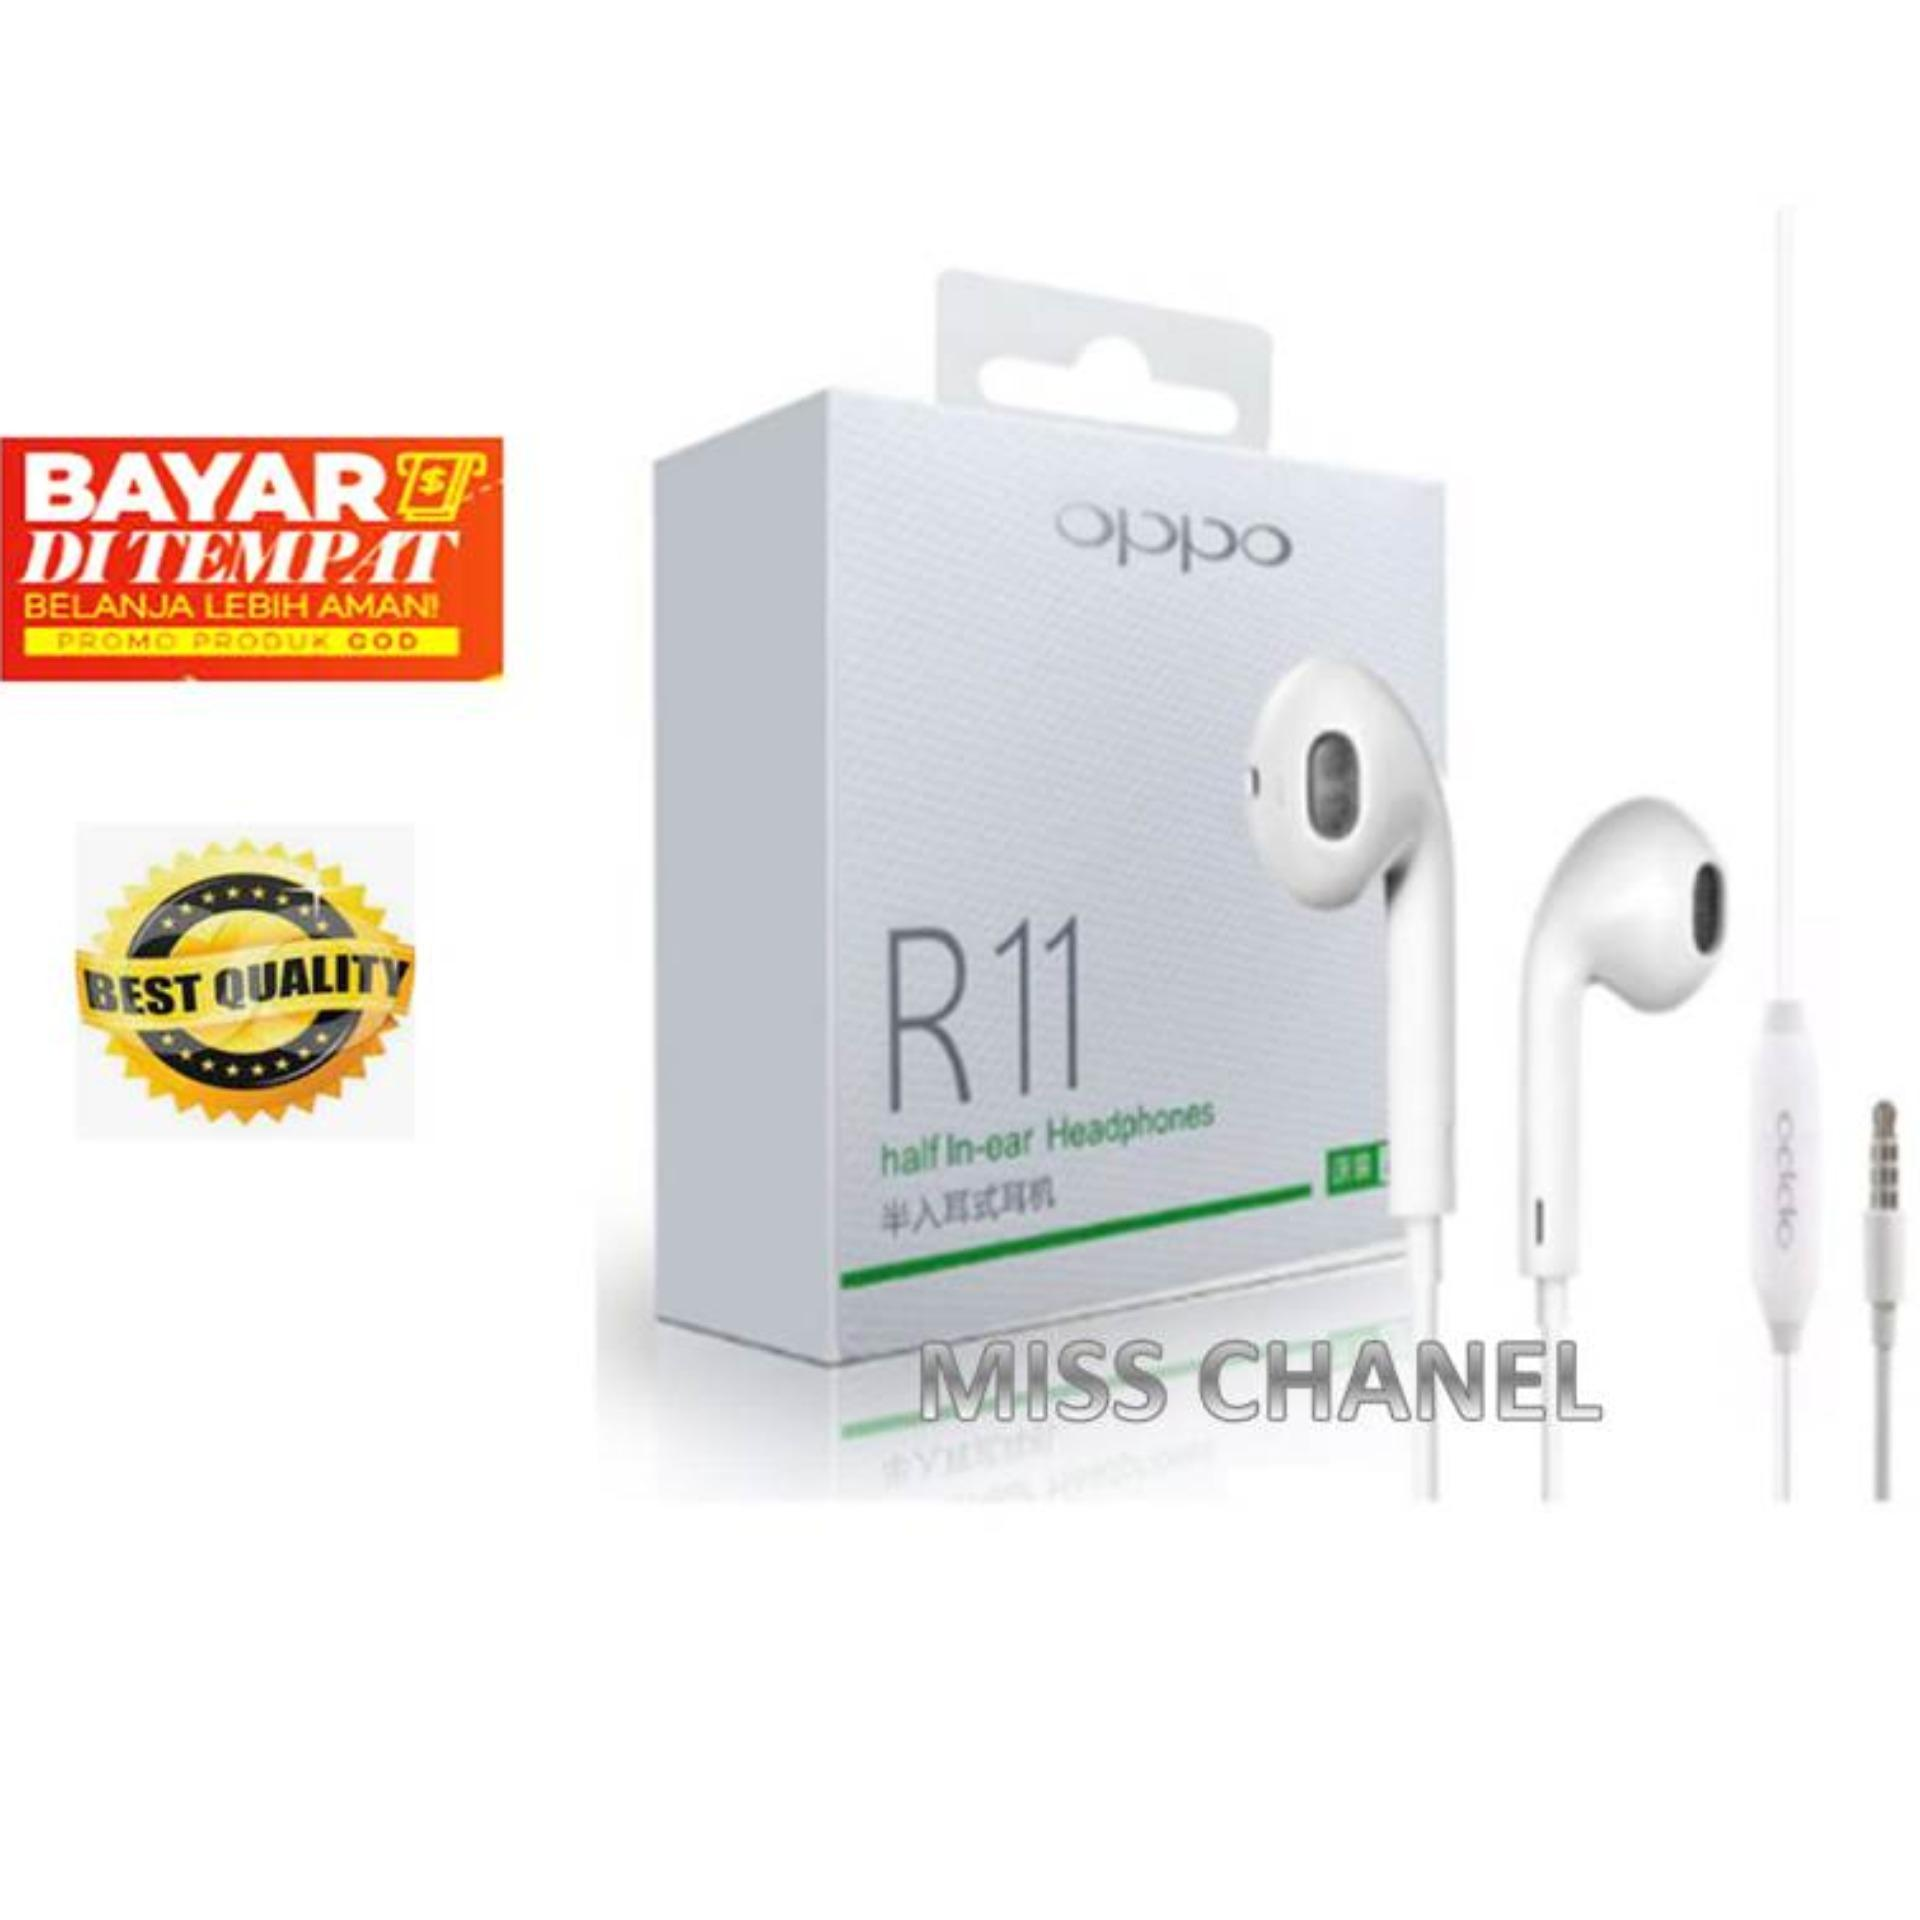 Miss chanel Headset/Handsfree R11 Super Bass MH135 for Oppo Android/ Headshet super Bass